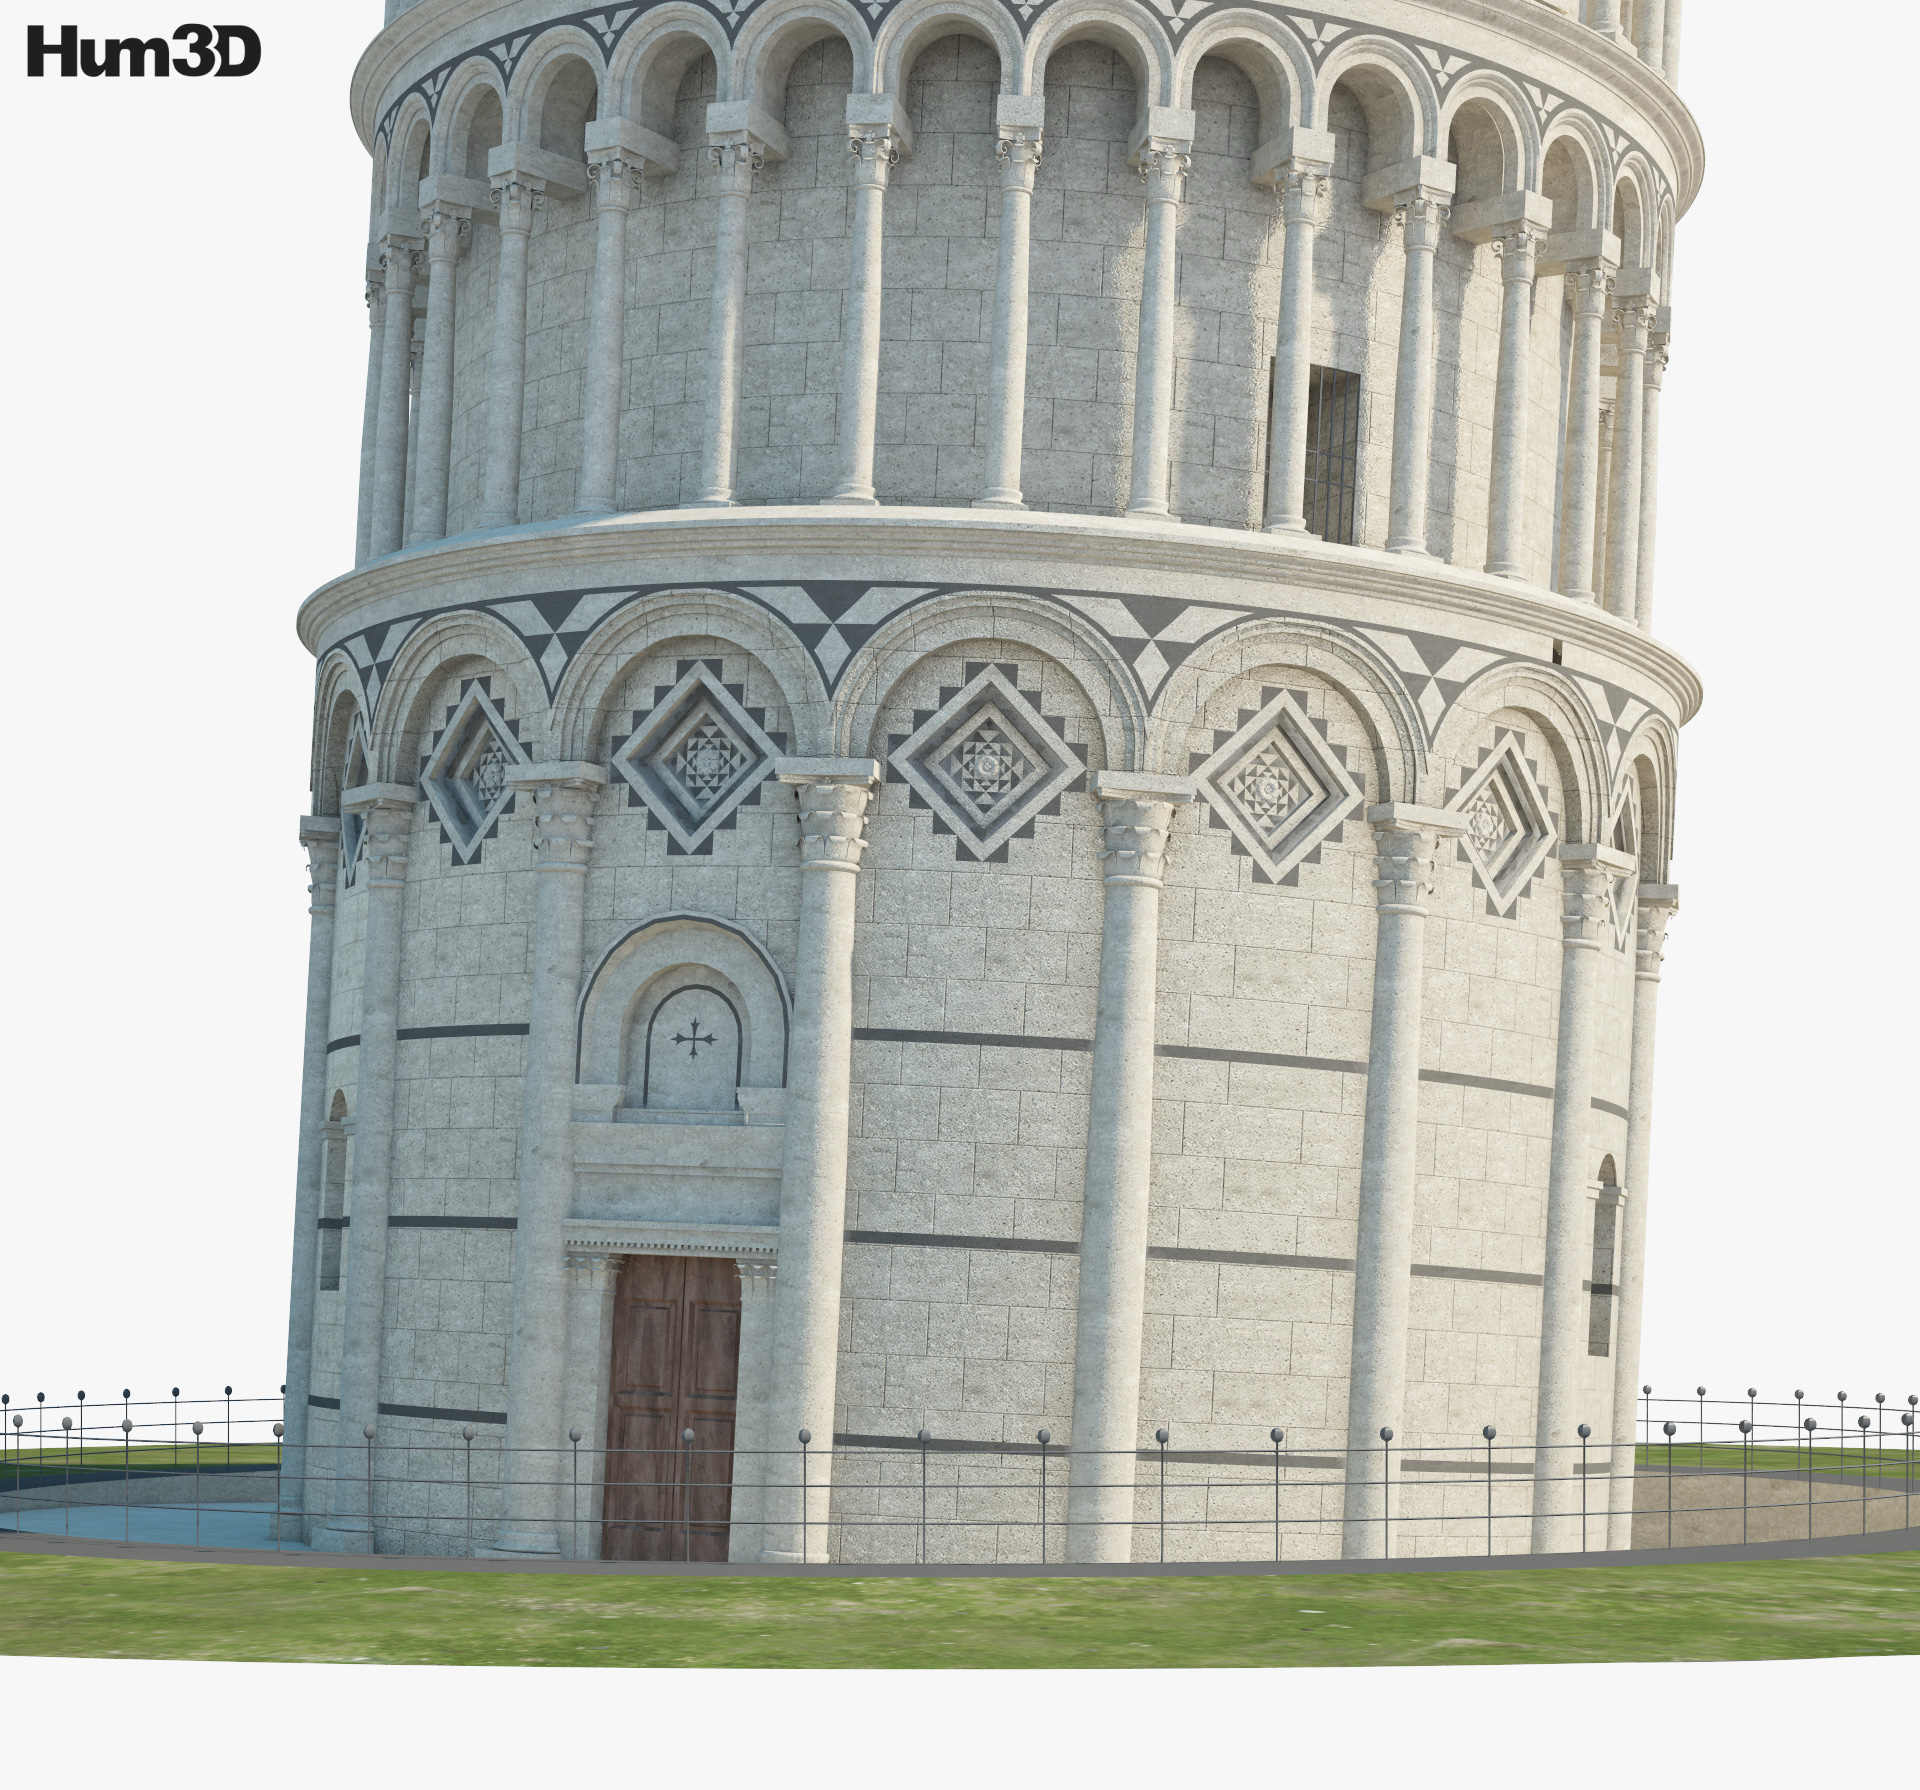 Leaning Tower of Pisa 3d model